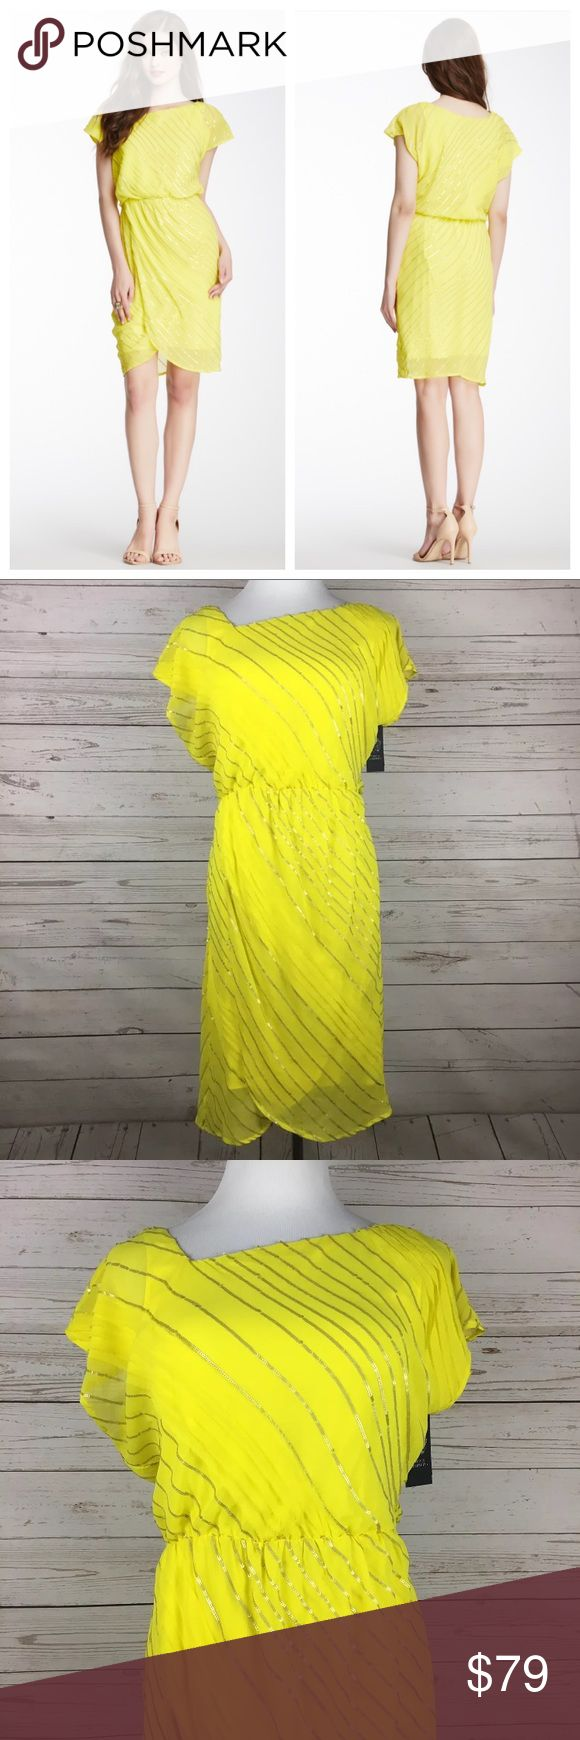 VINCE CAMUTO Yellow Sequined Dress NWT •Size:  4  •Color: Yellow  •Material:  100% Polyester  •Lining:  96% Polyester, 4% Elastane  •Closure:  Pull On  •Details:  Tulip Hem  •Care:  Dry Clean  •Condition:  New With Tags  All measurements are in inches and taken with garment laying flat.  Not doubled.   •Bust: 17  •Waist: 12 1/2  •Hips: 18  •Shoulder to Hem: 37   Item:  7430617499 Vince Camuto Dresses